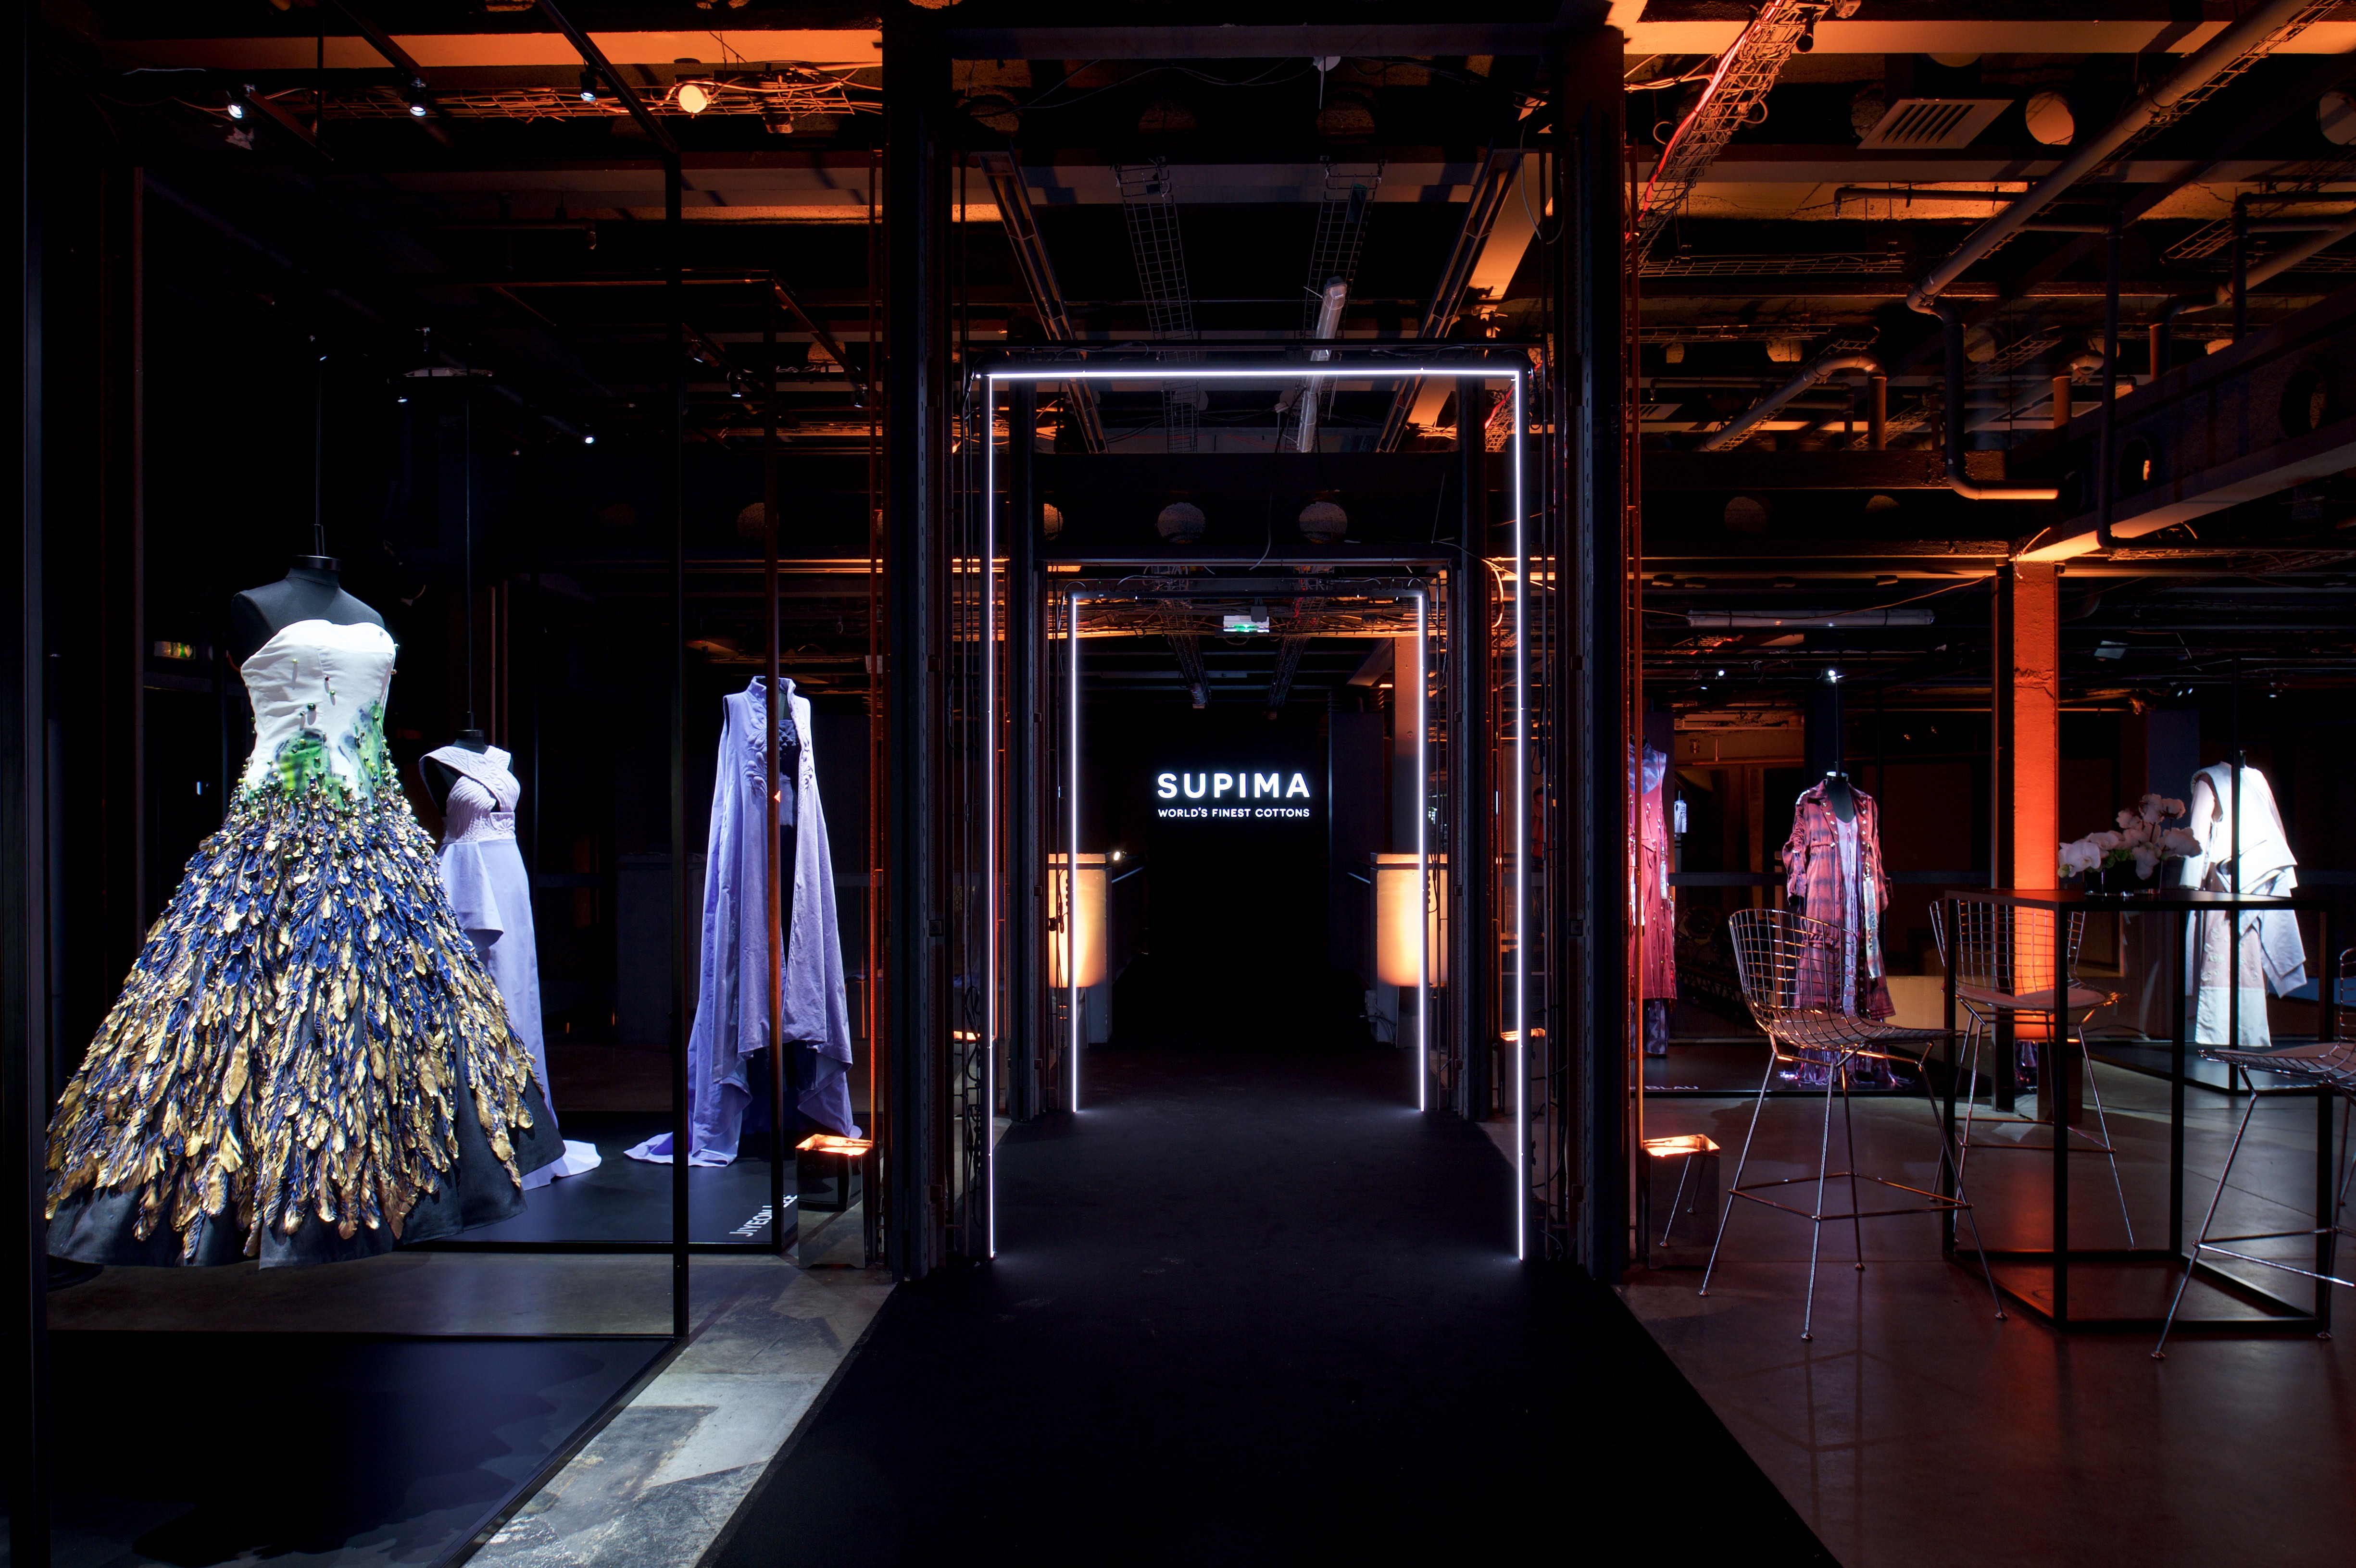 SUPIMA DESIGN COMPETITION ORGANIZES ITS 9TH EDITION IN PARIS